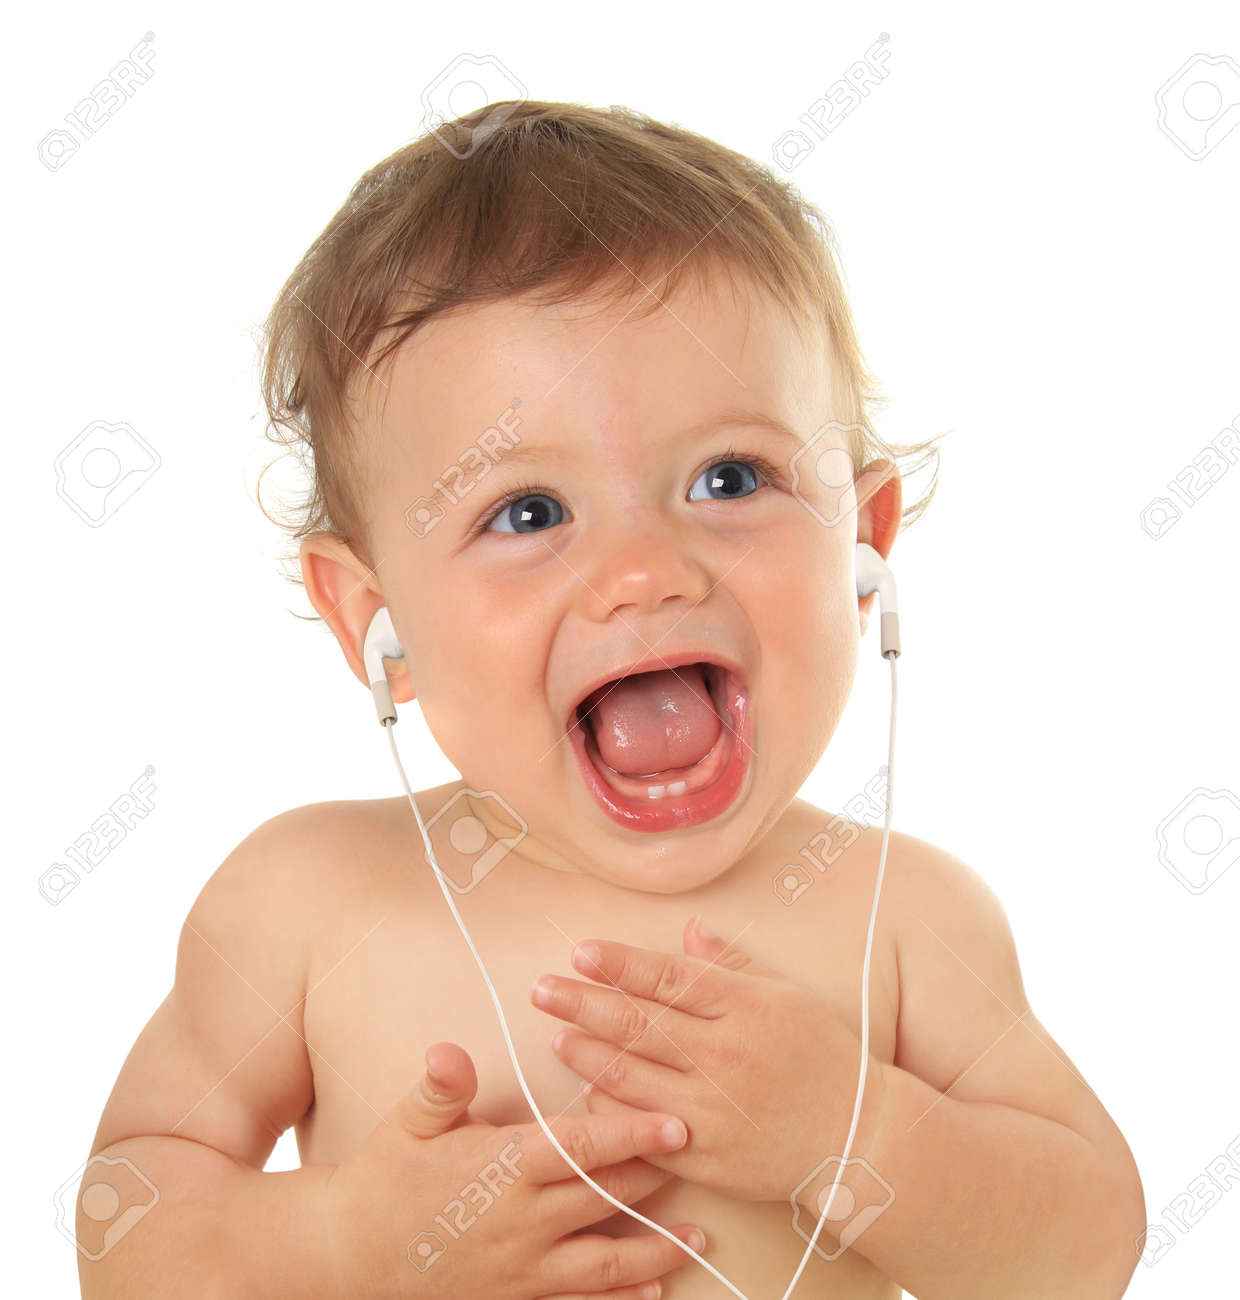 Adorable ten month old baby listening to music on earbuds Stock Photo - 17347936